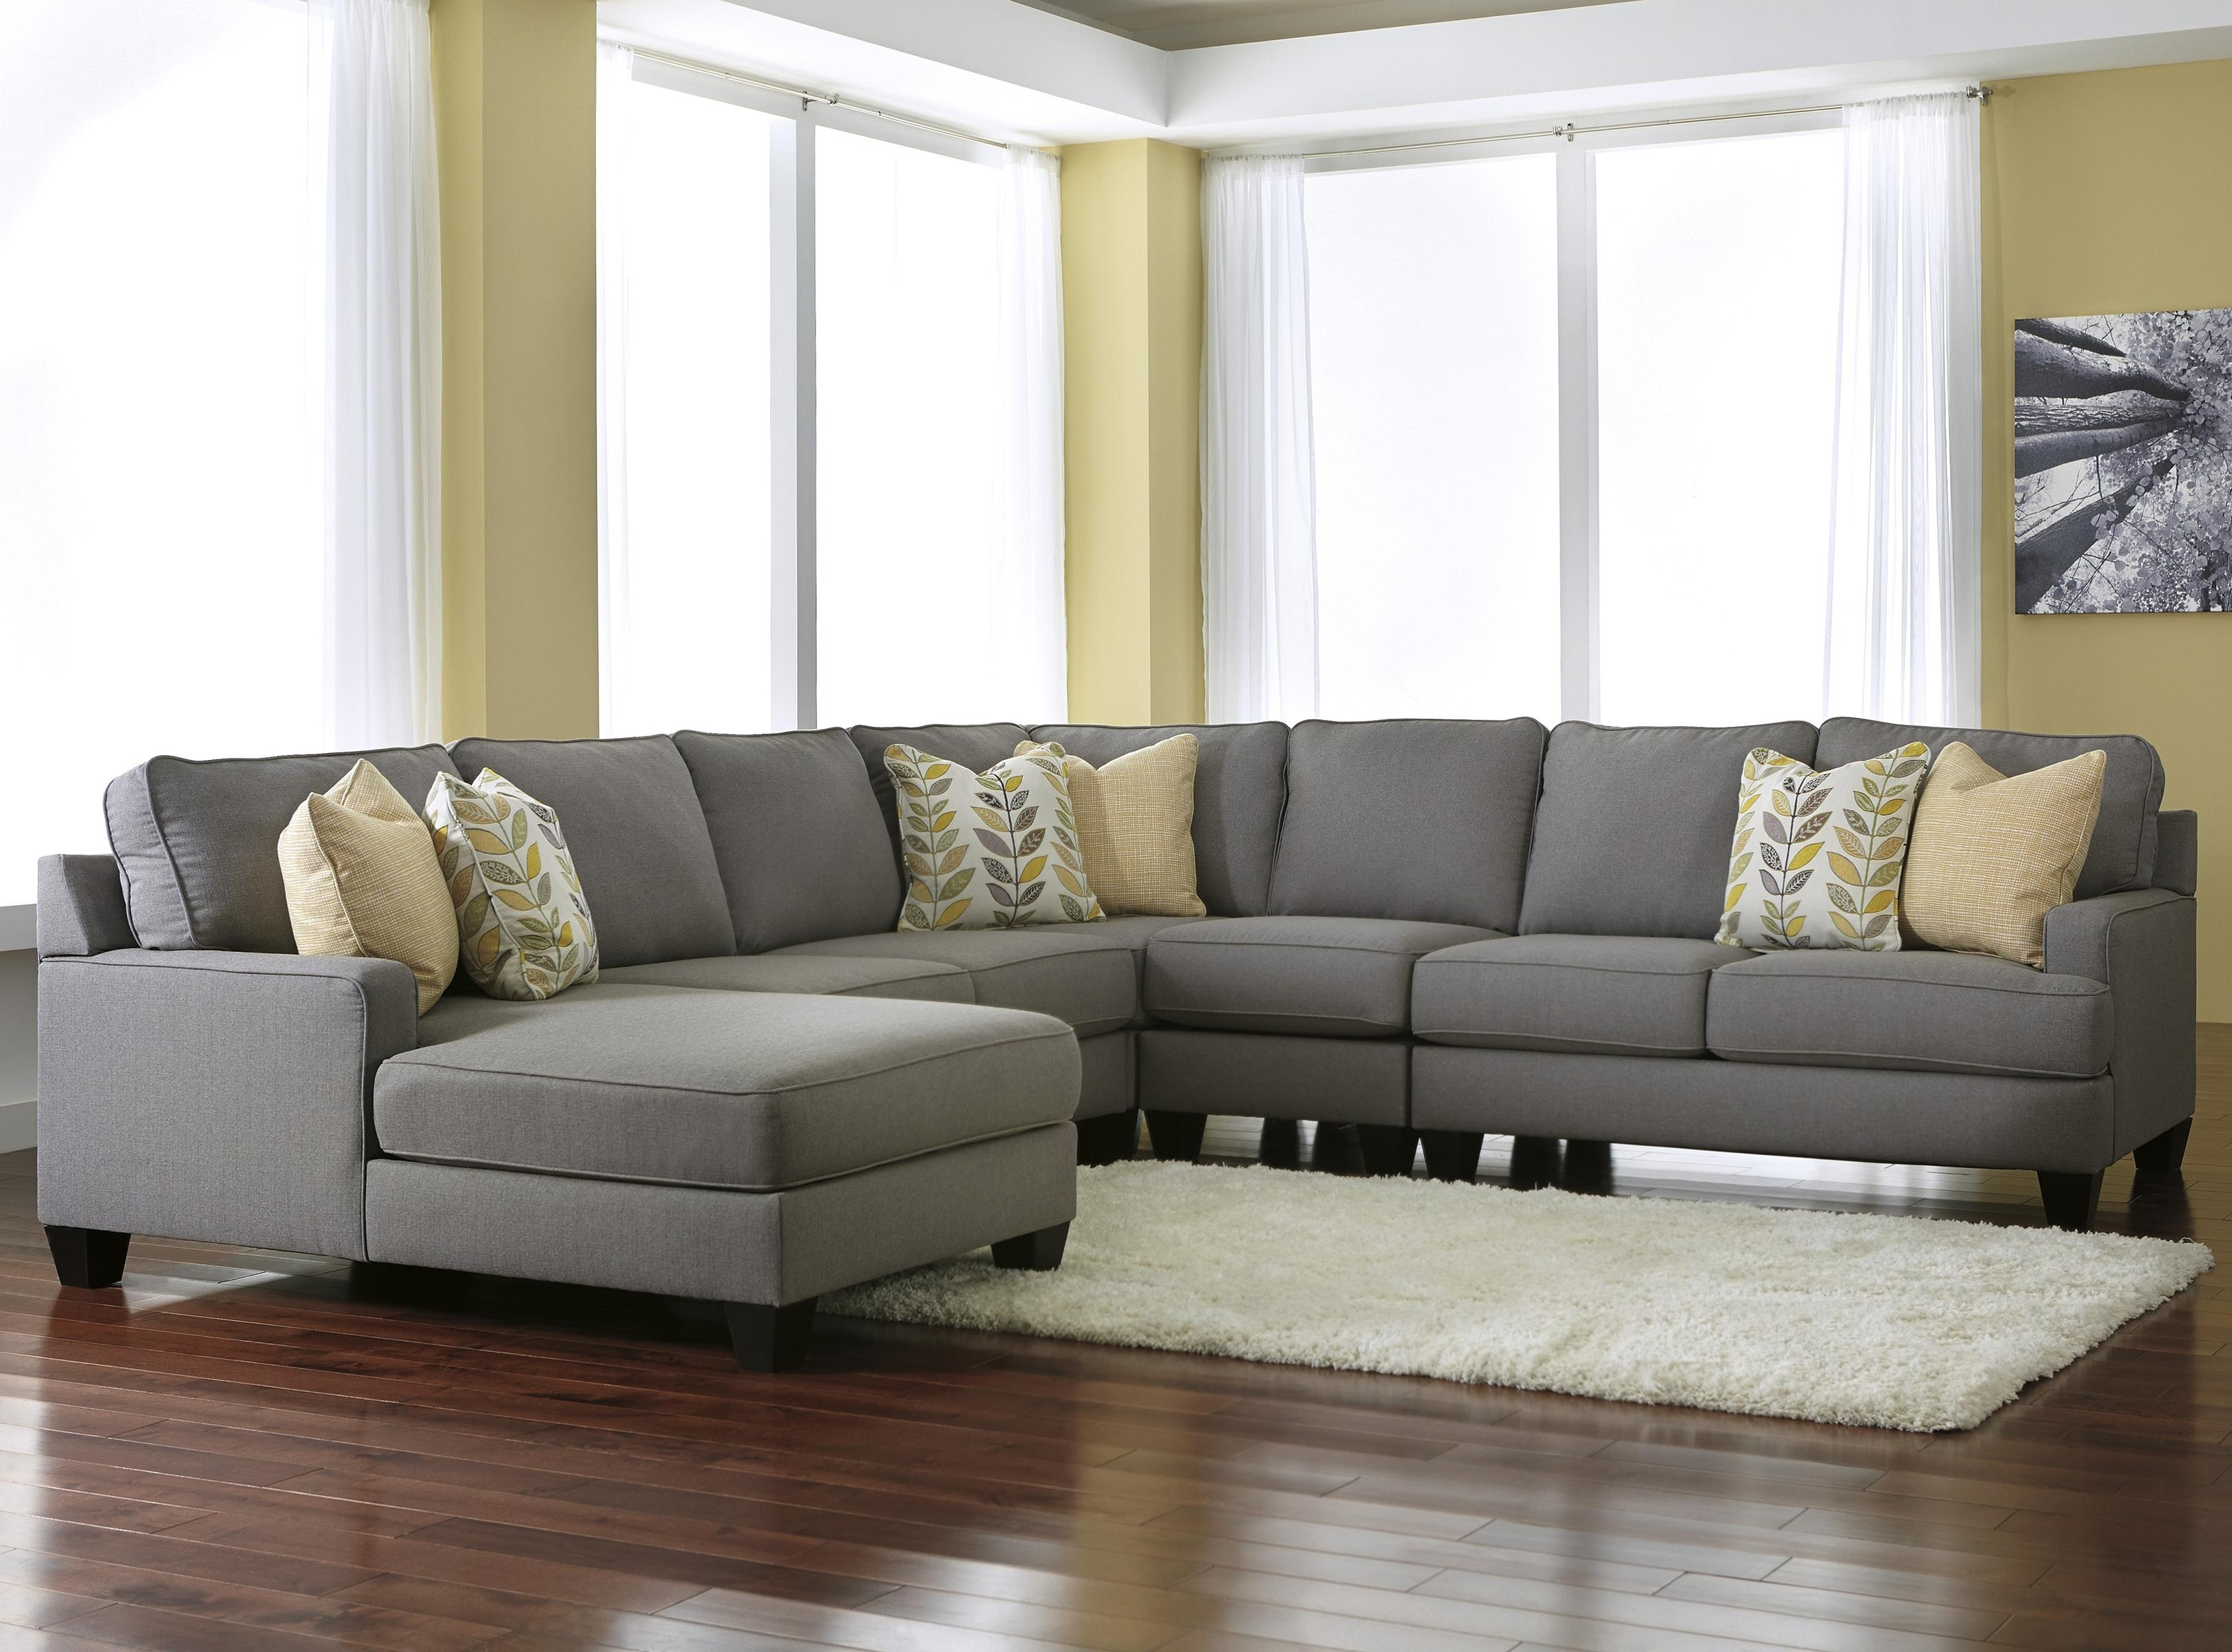 Modern 5 Piece Sectional Sofa With Left Chaise & Reversible Seat Regarding Sectional Sofas That Come In Pieces (View 10 of 10)